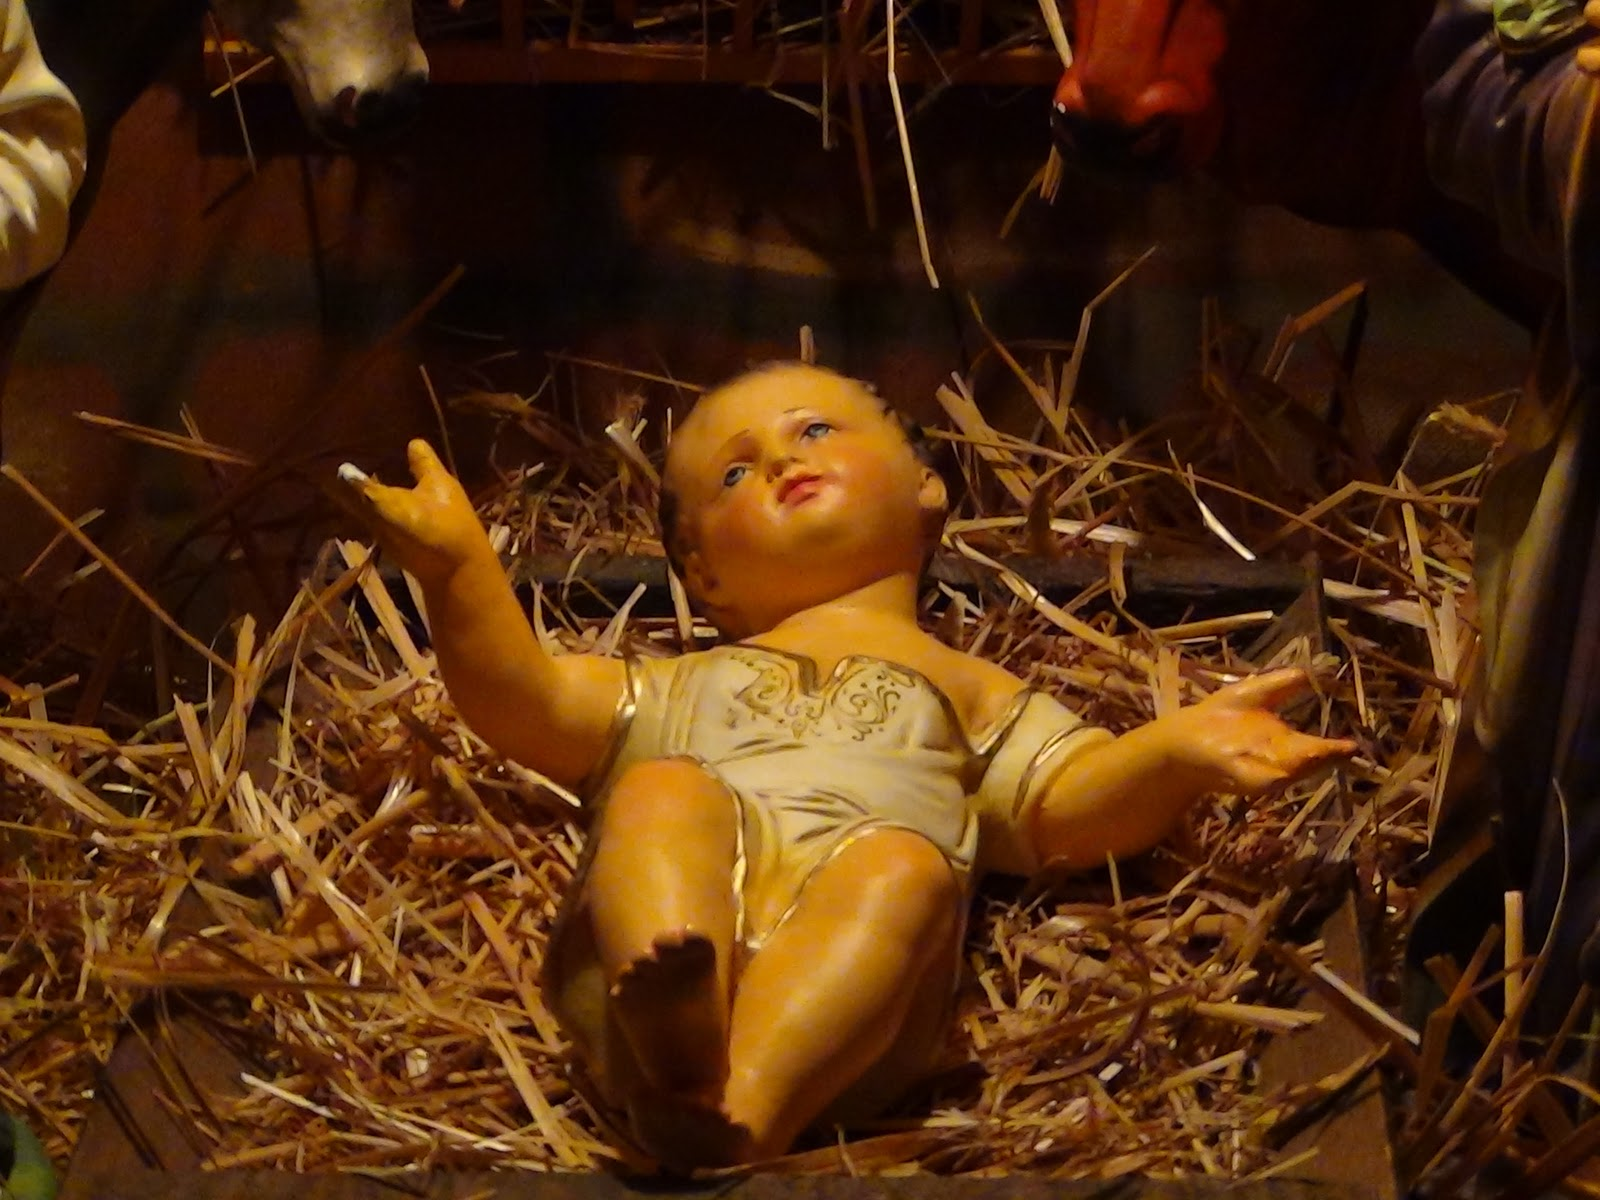 tiny baby jesus and a cross tumble the roman empire traditional